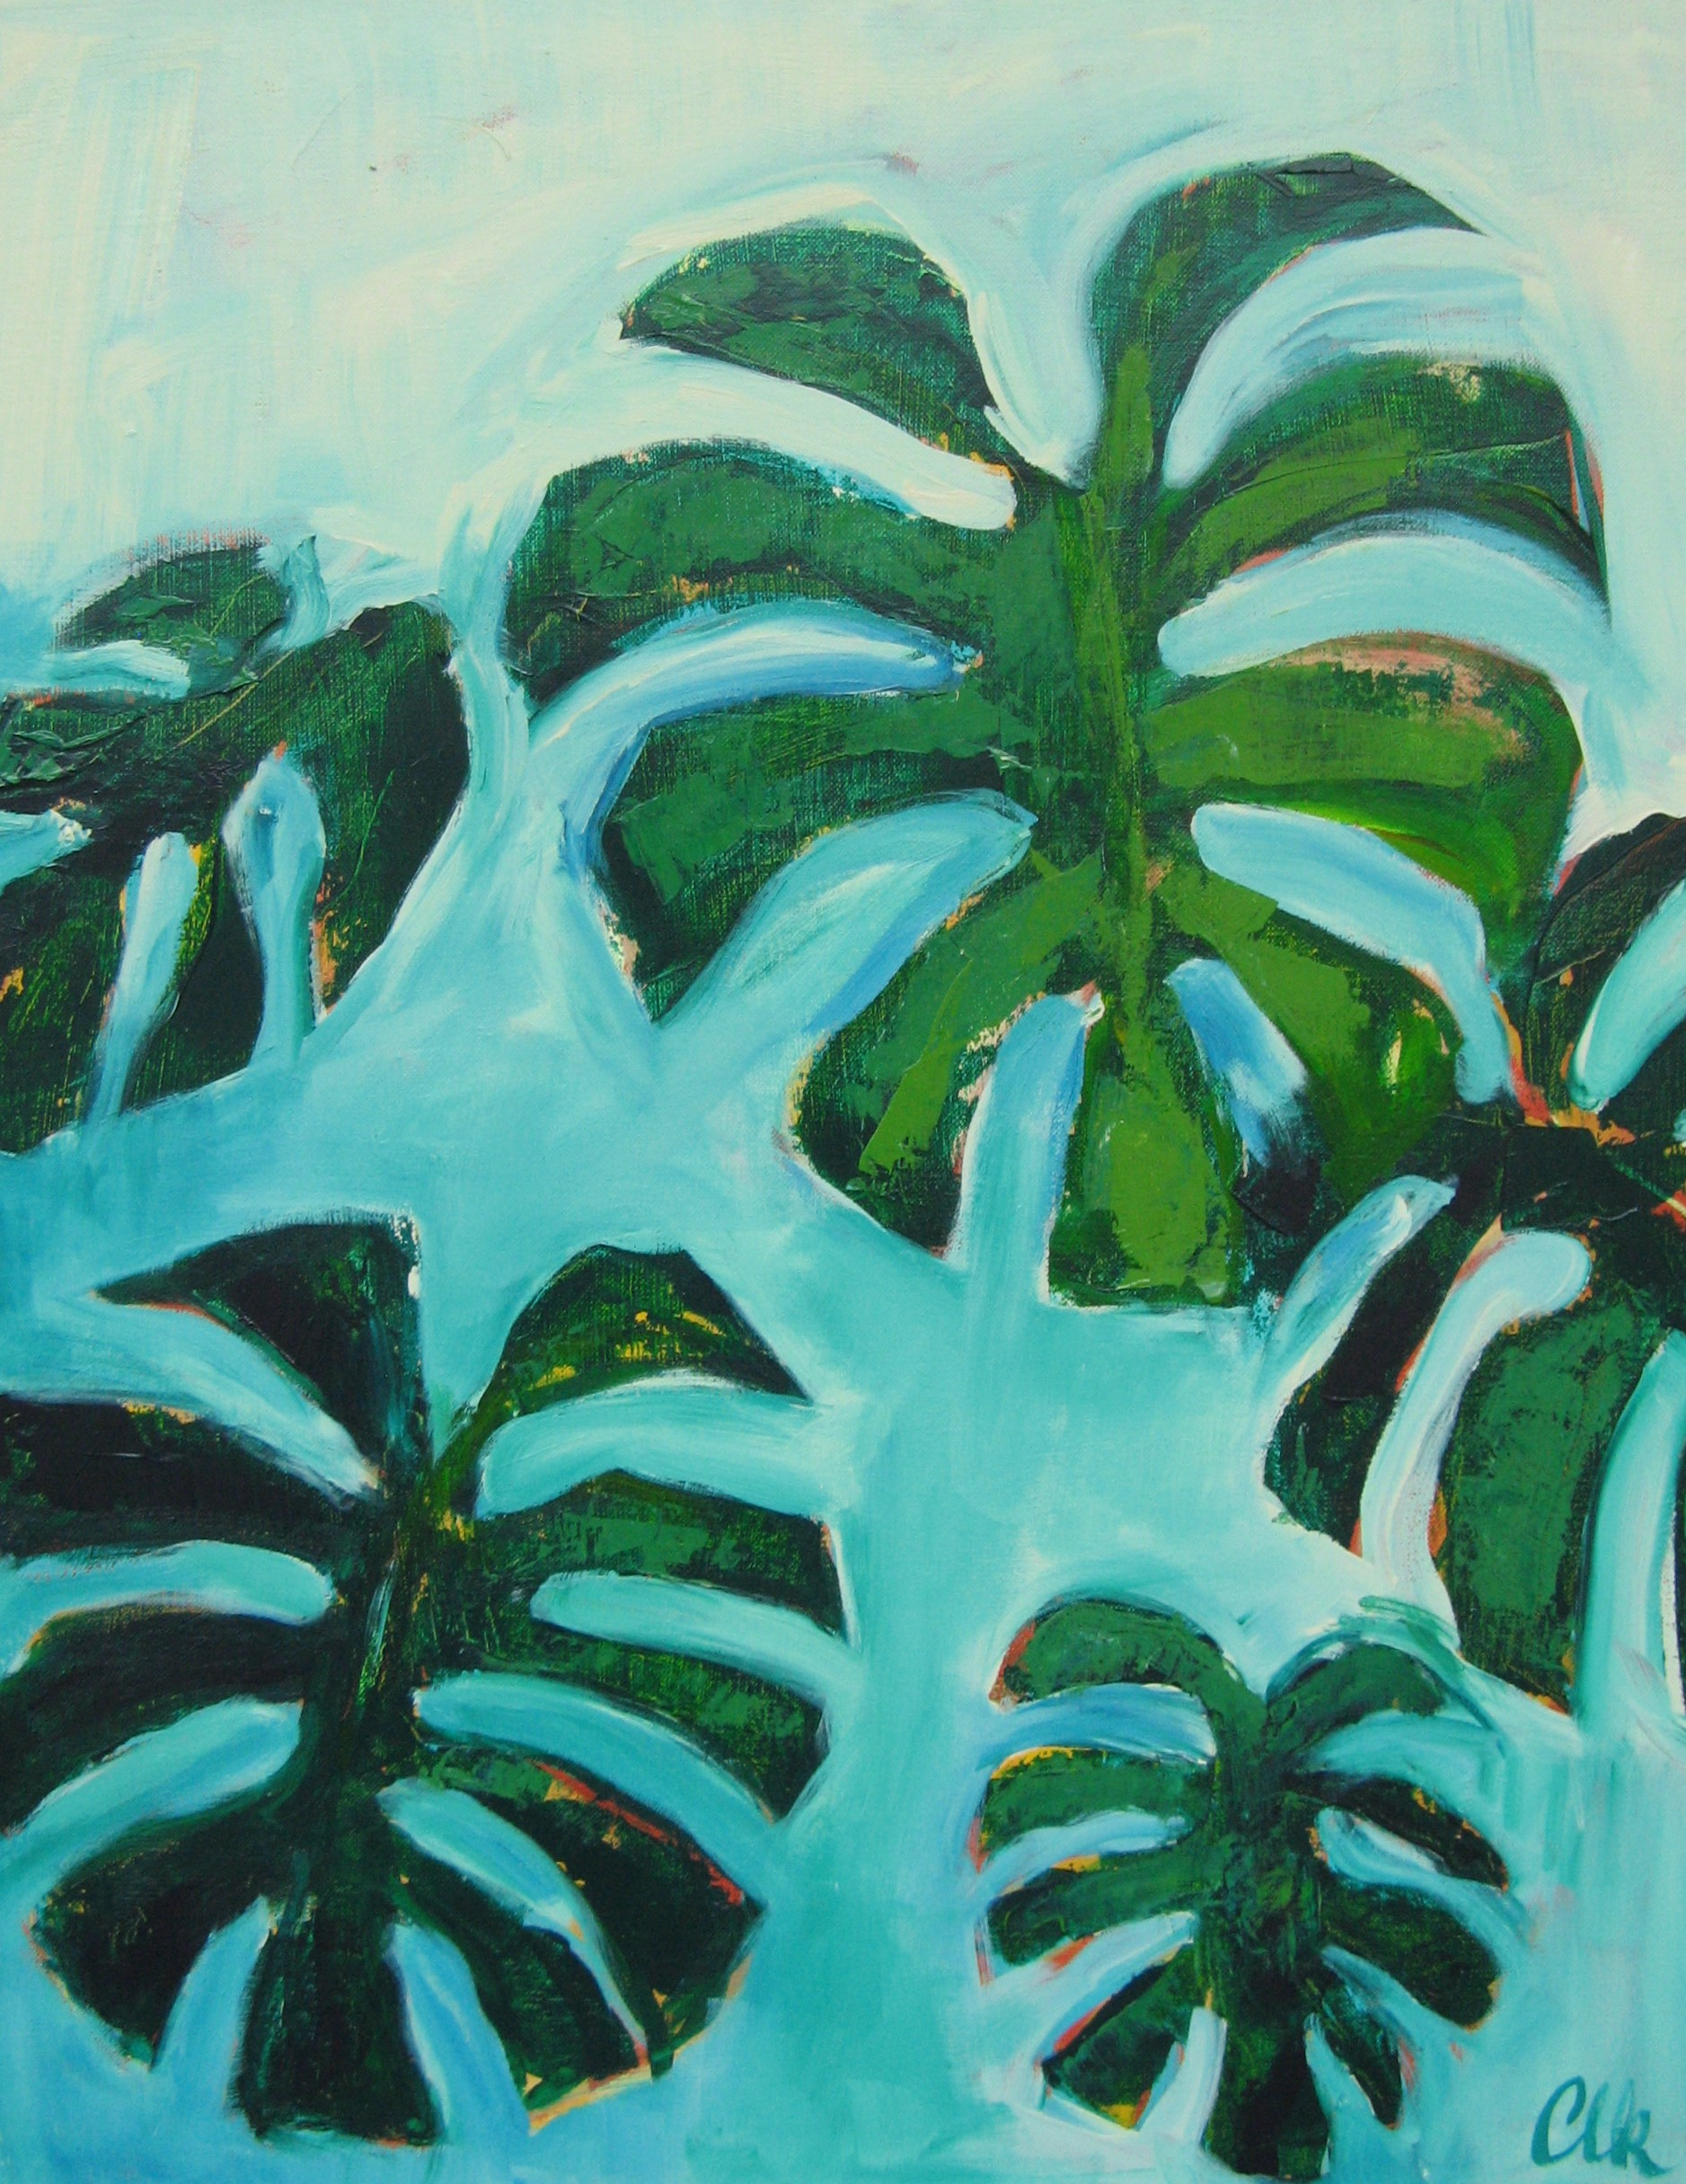 In The Tropics - acrylic on canvas 30x24